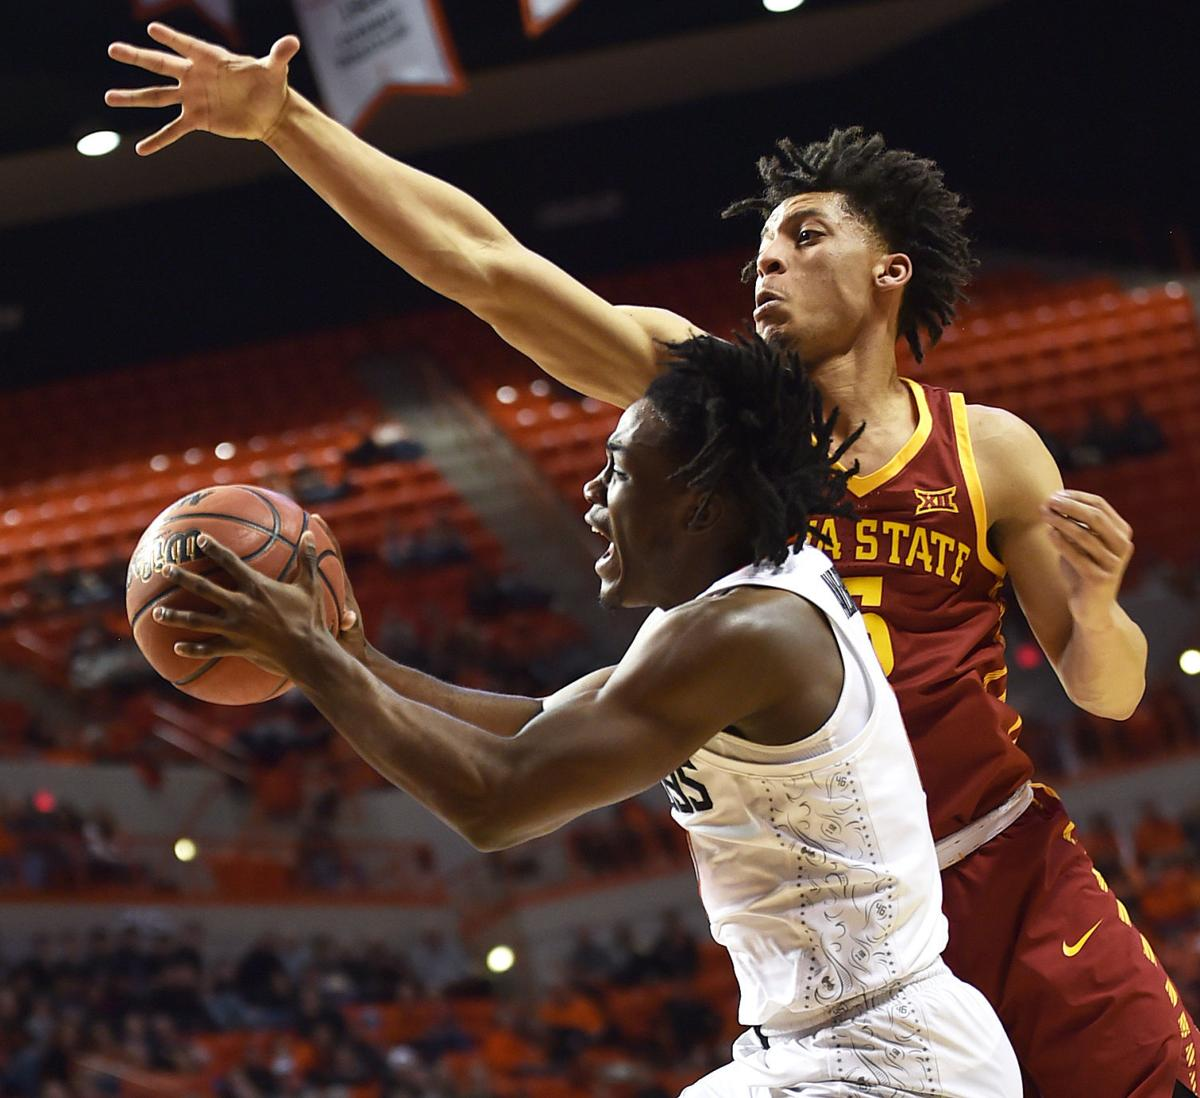 OSU basketball: With injuries and illnesses taking toll